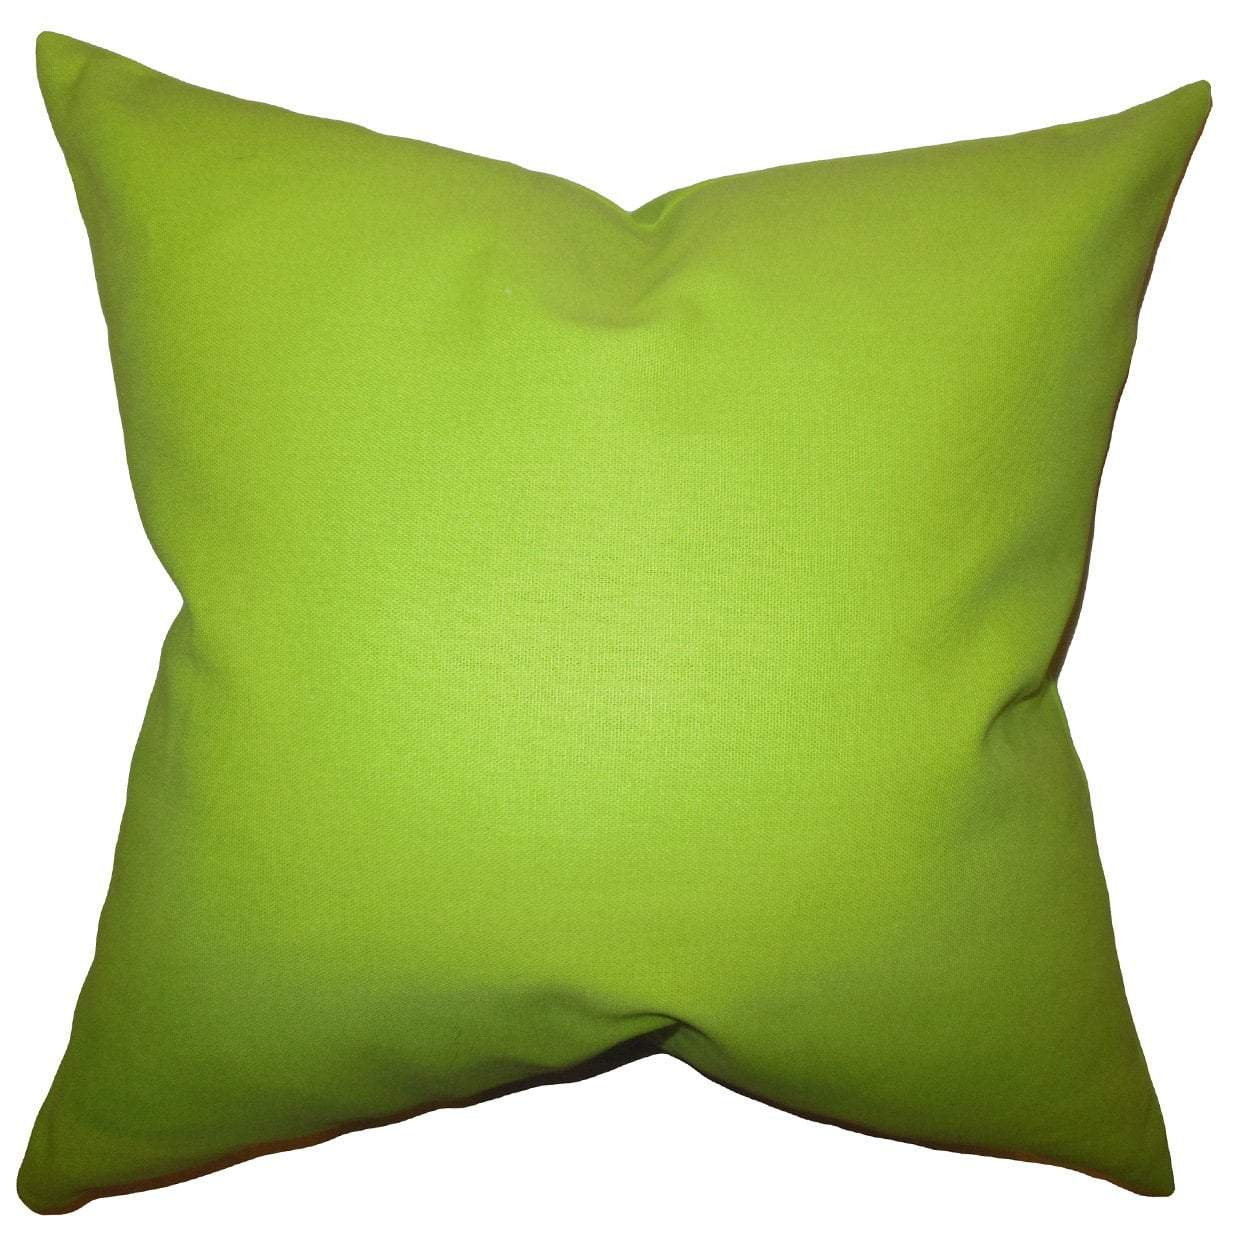 Green Cotton Solid Contemporary Throw Pillow Cover